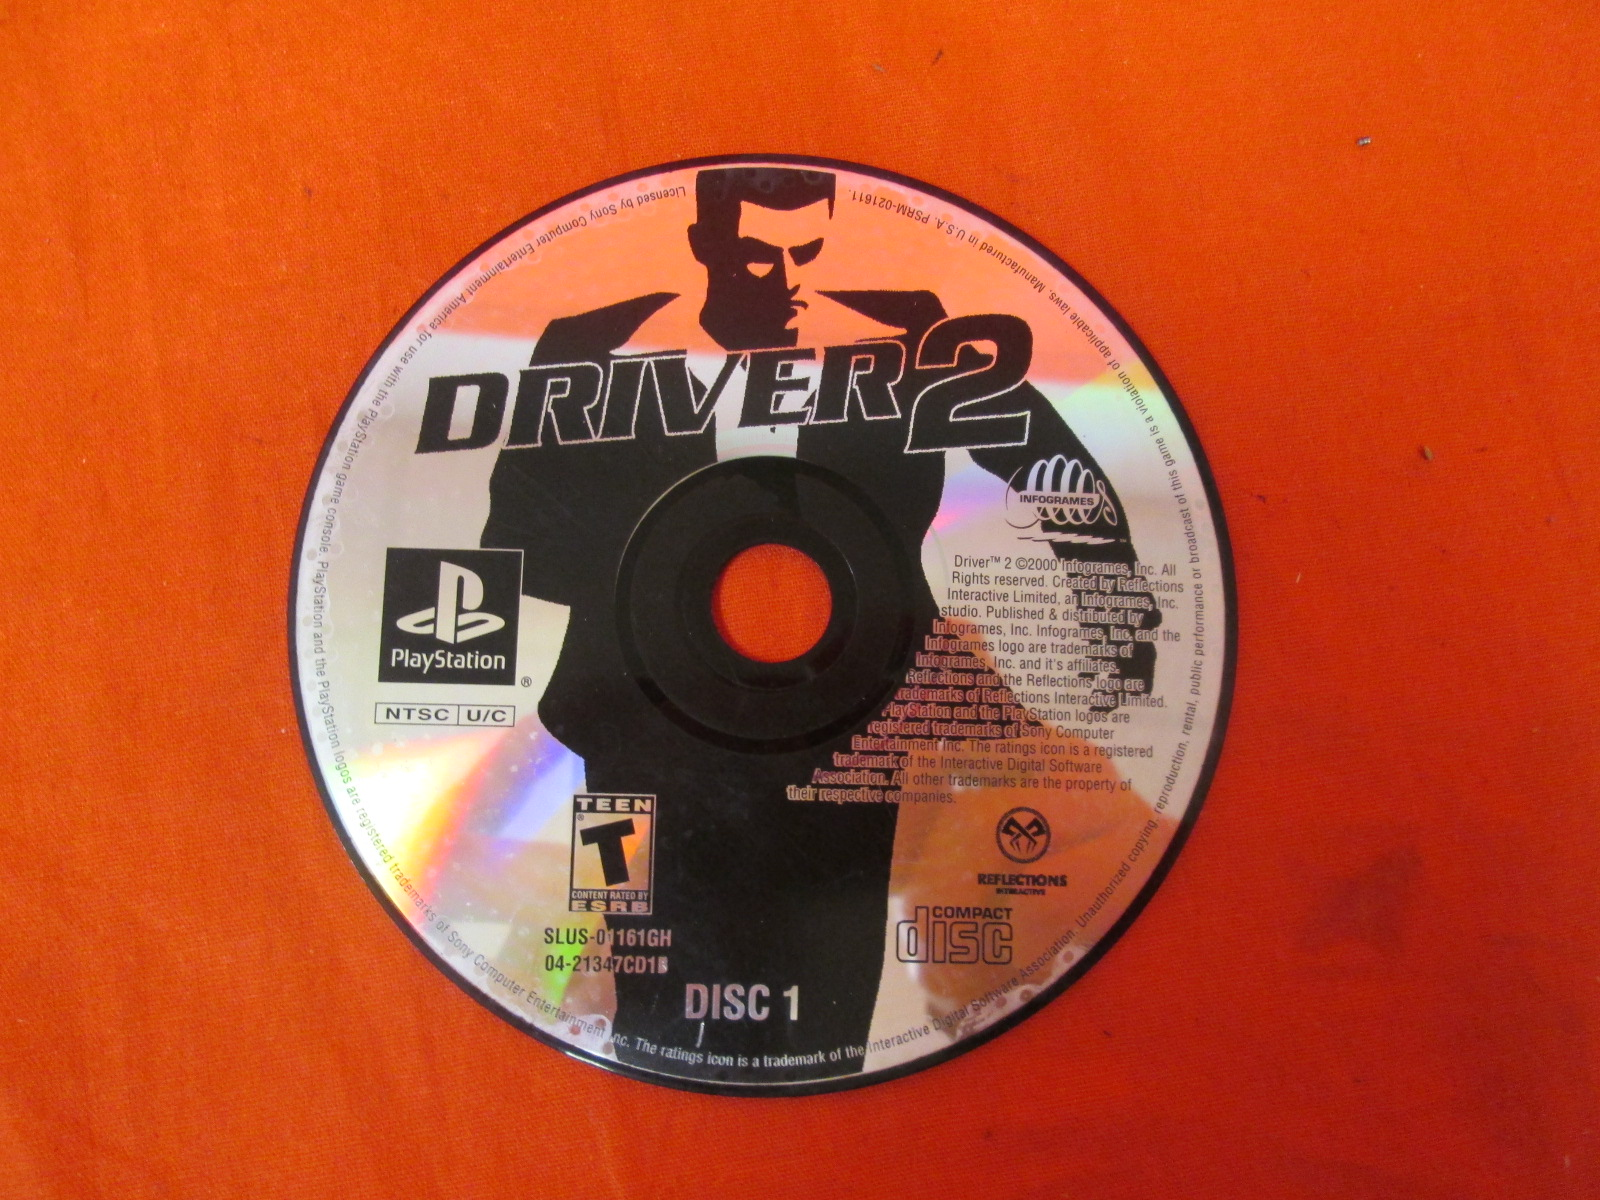 Replacement Disc 1 For Driver 2 PlayStation For PlayStation 1